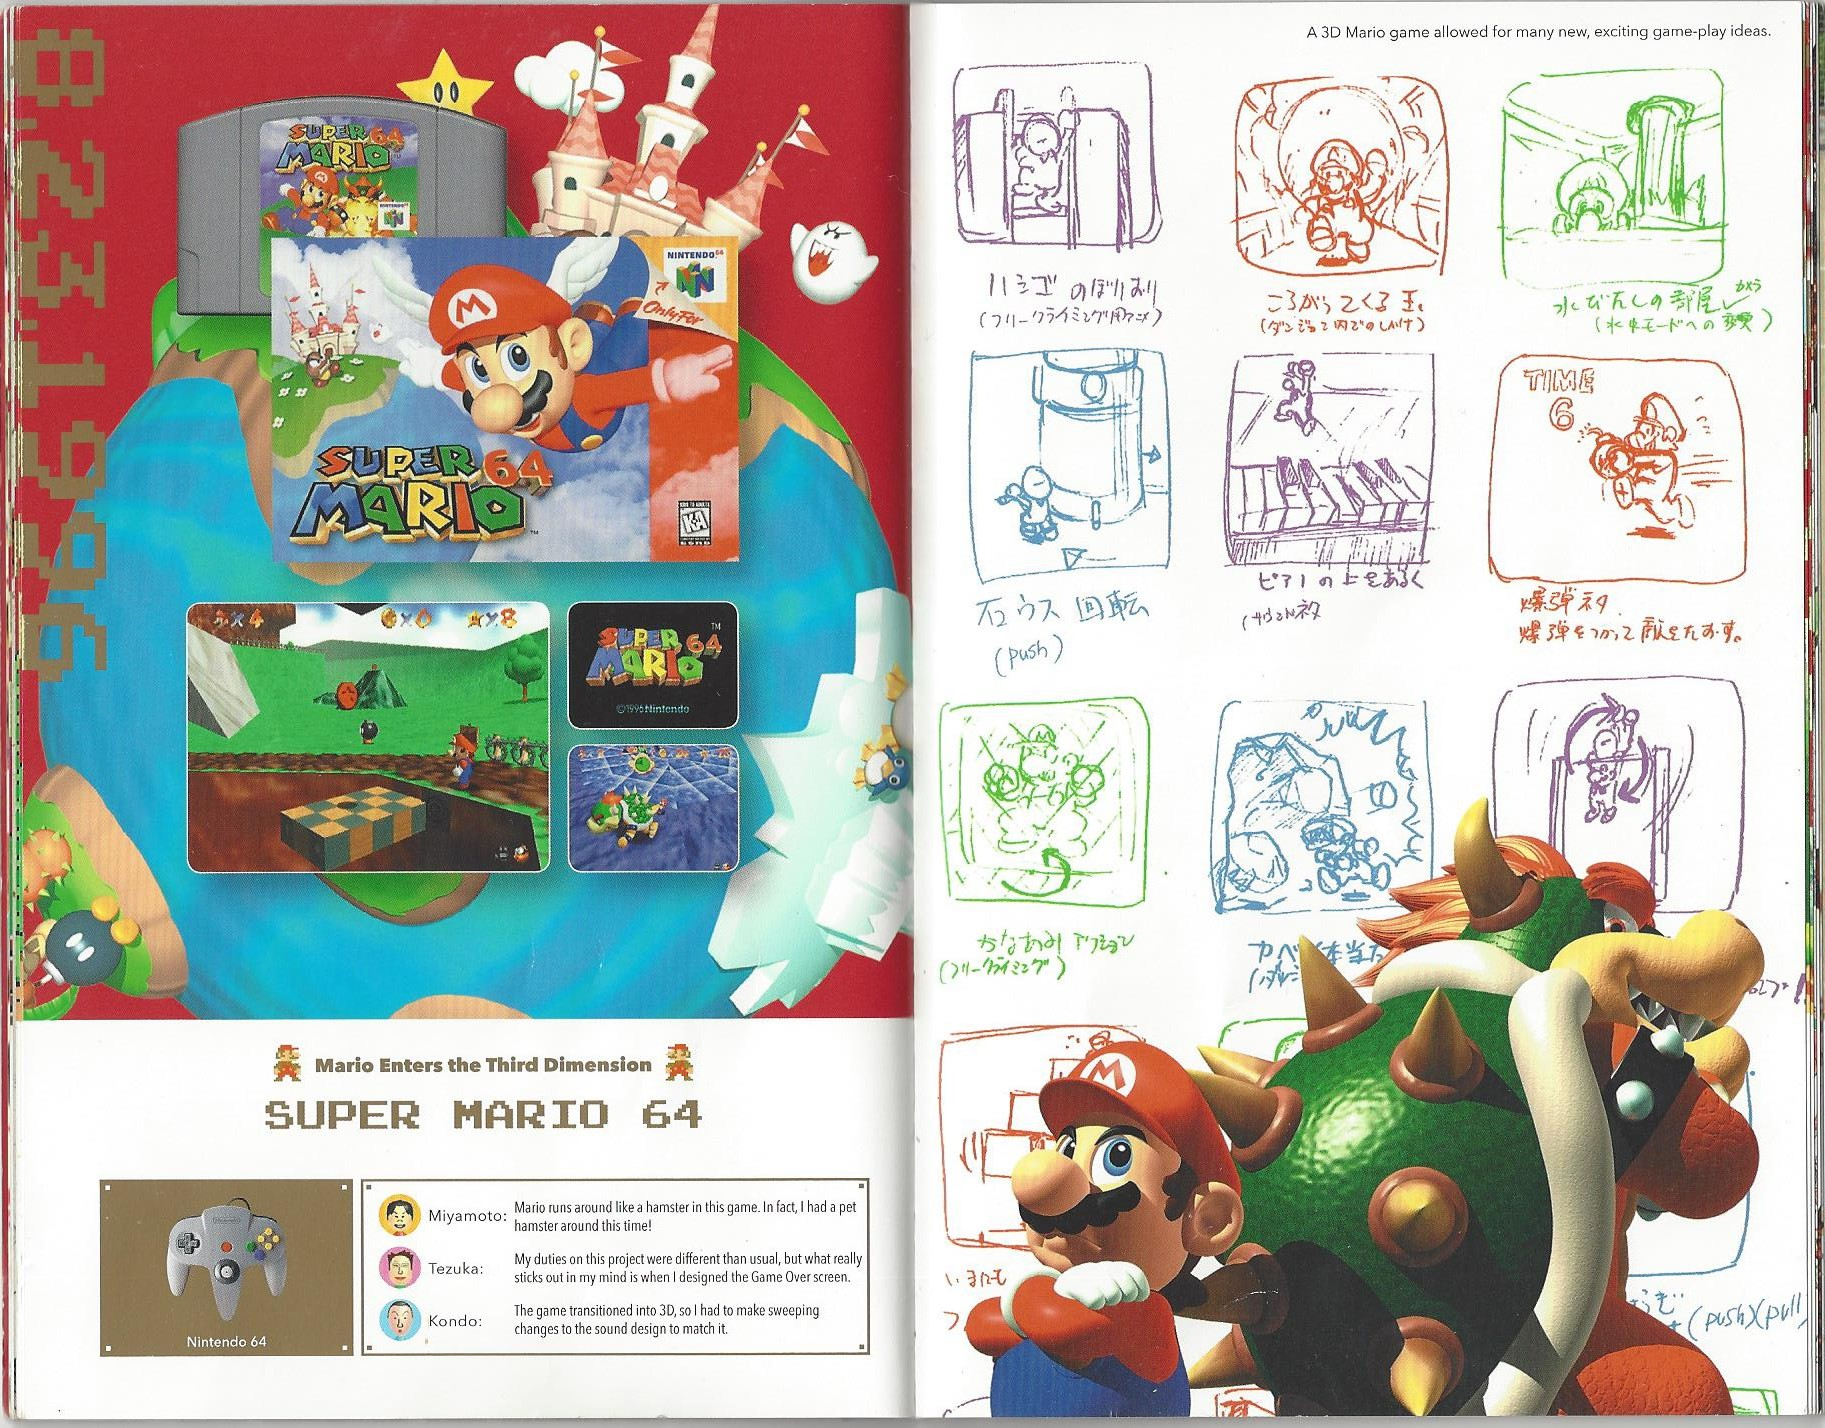 List of Super Mario 64 pre-release and unused content